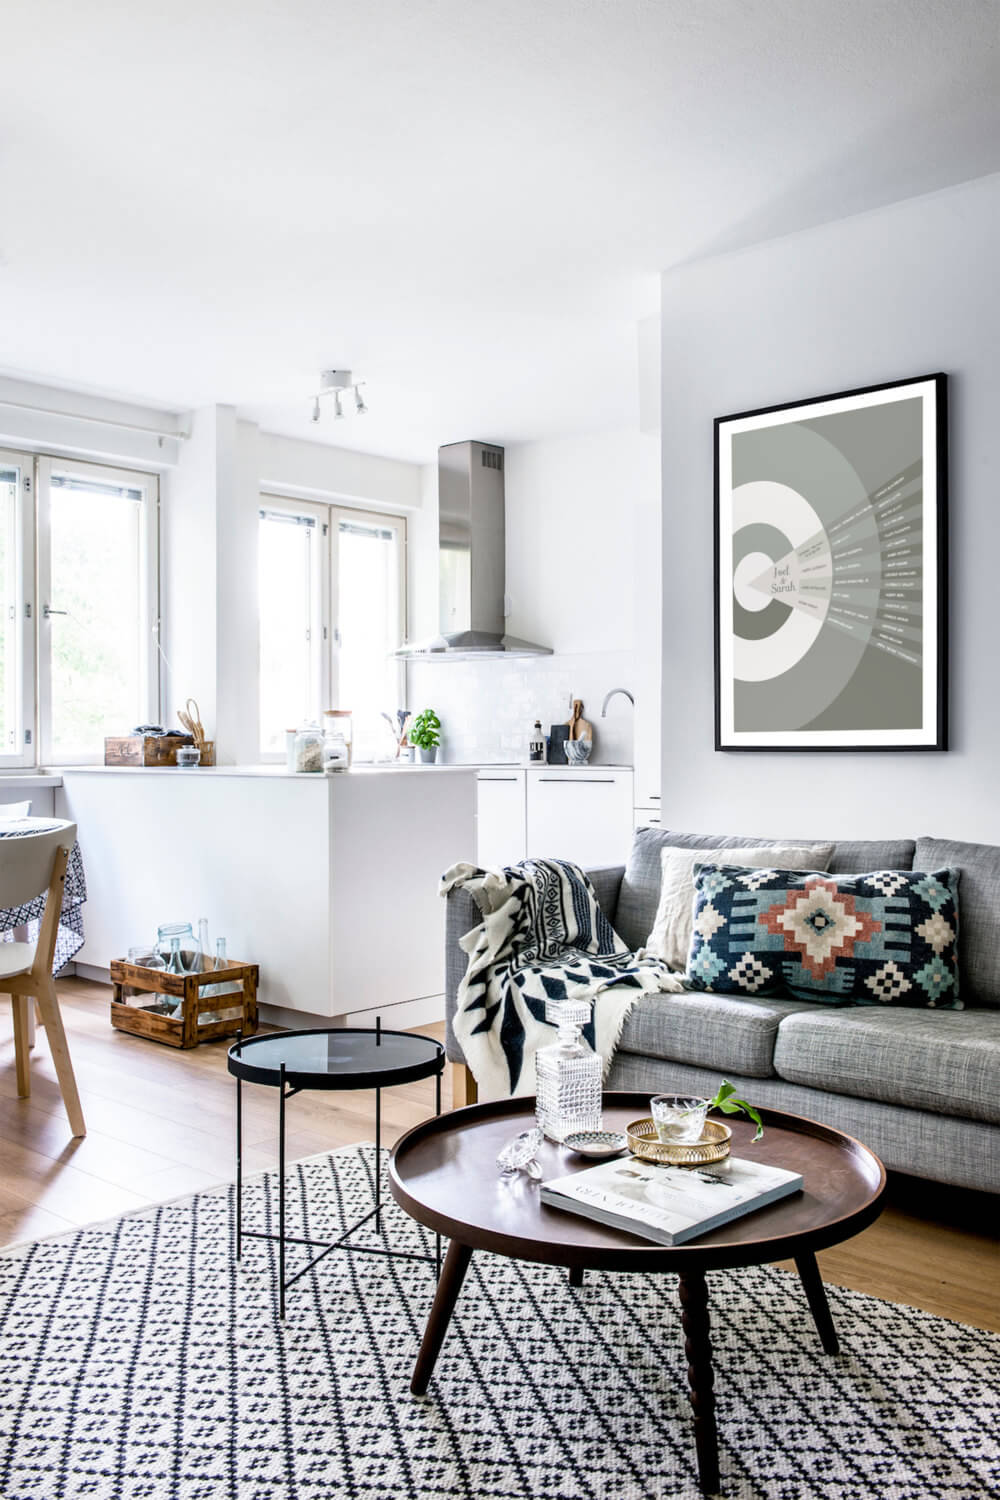 20 Best Small Apartment Living Room Decor and Design Ideas ... on Small Living Room Ideas 2019  id=80156